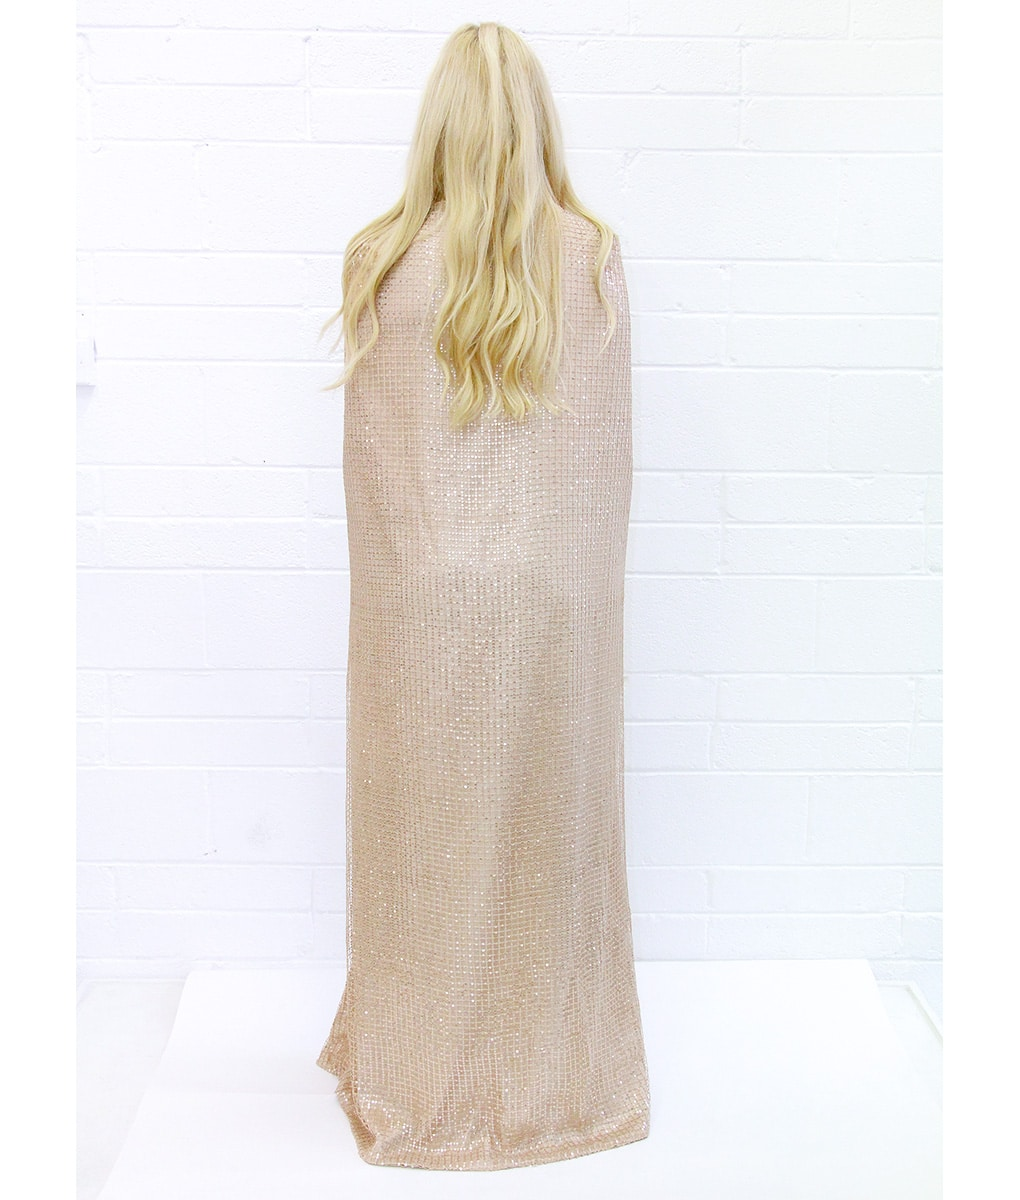 Alila-Champagne-Sequin-Cape-Gown-back-bariano